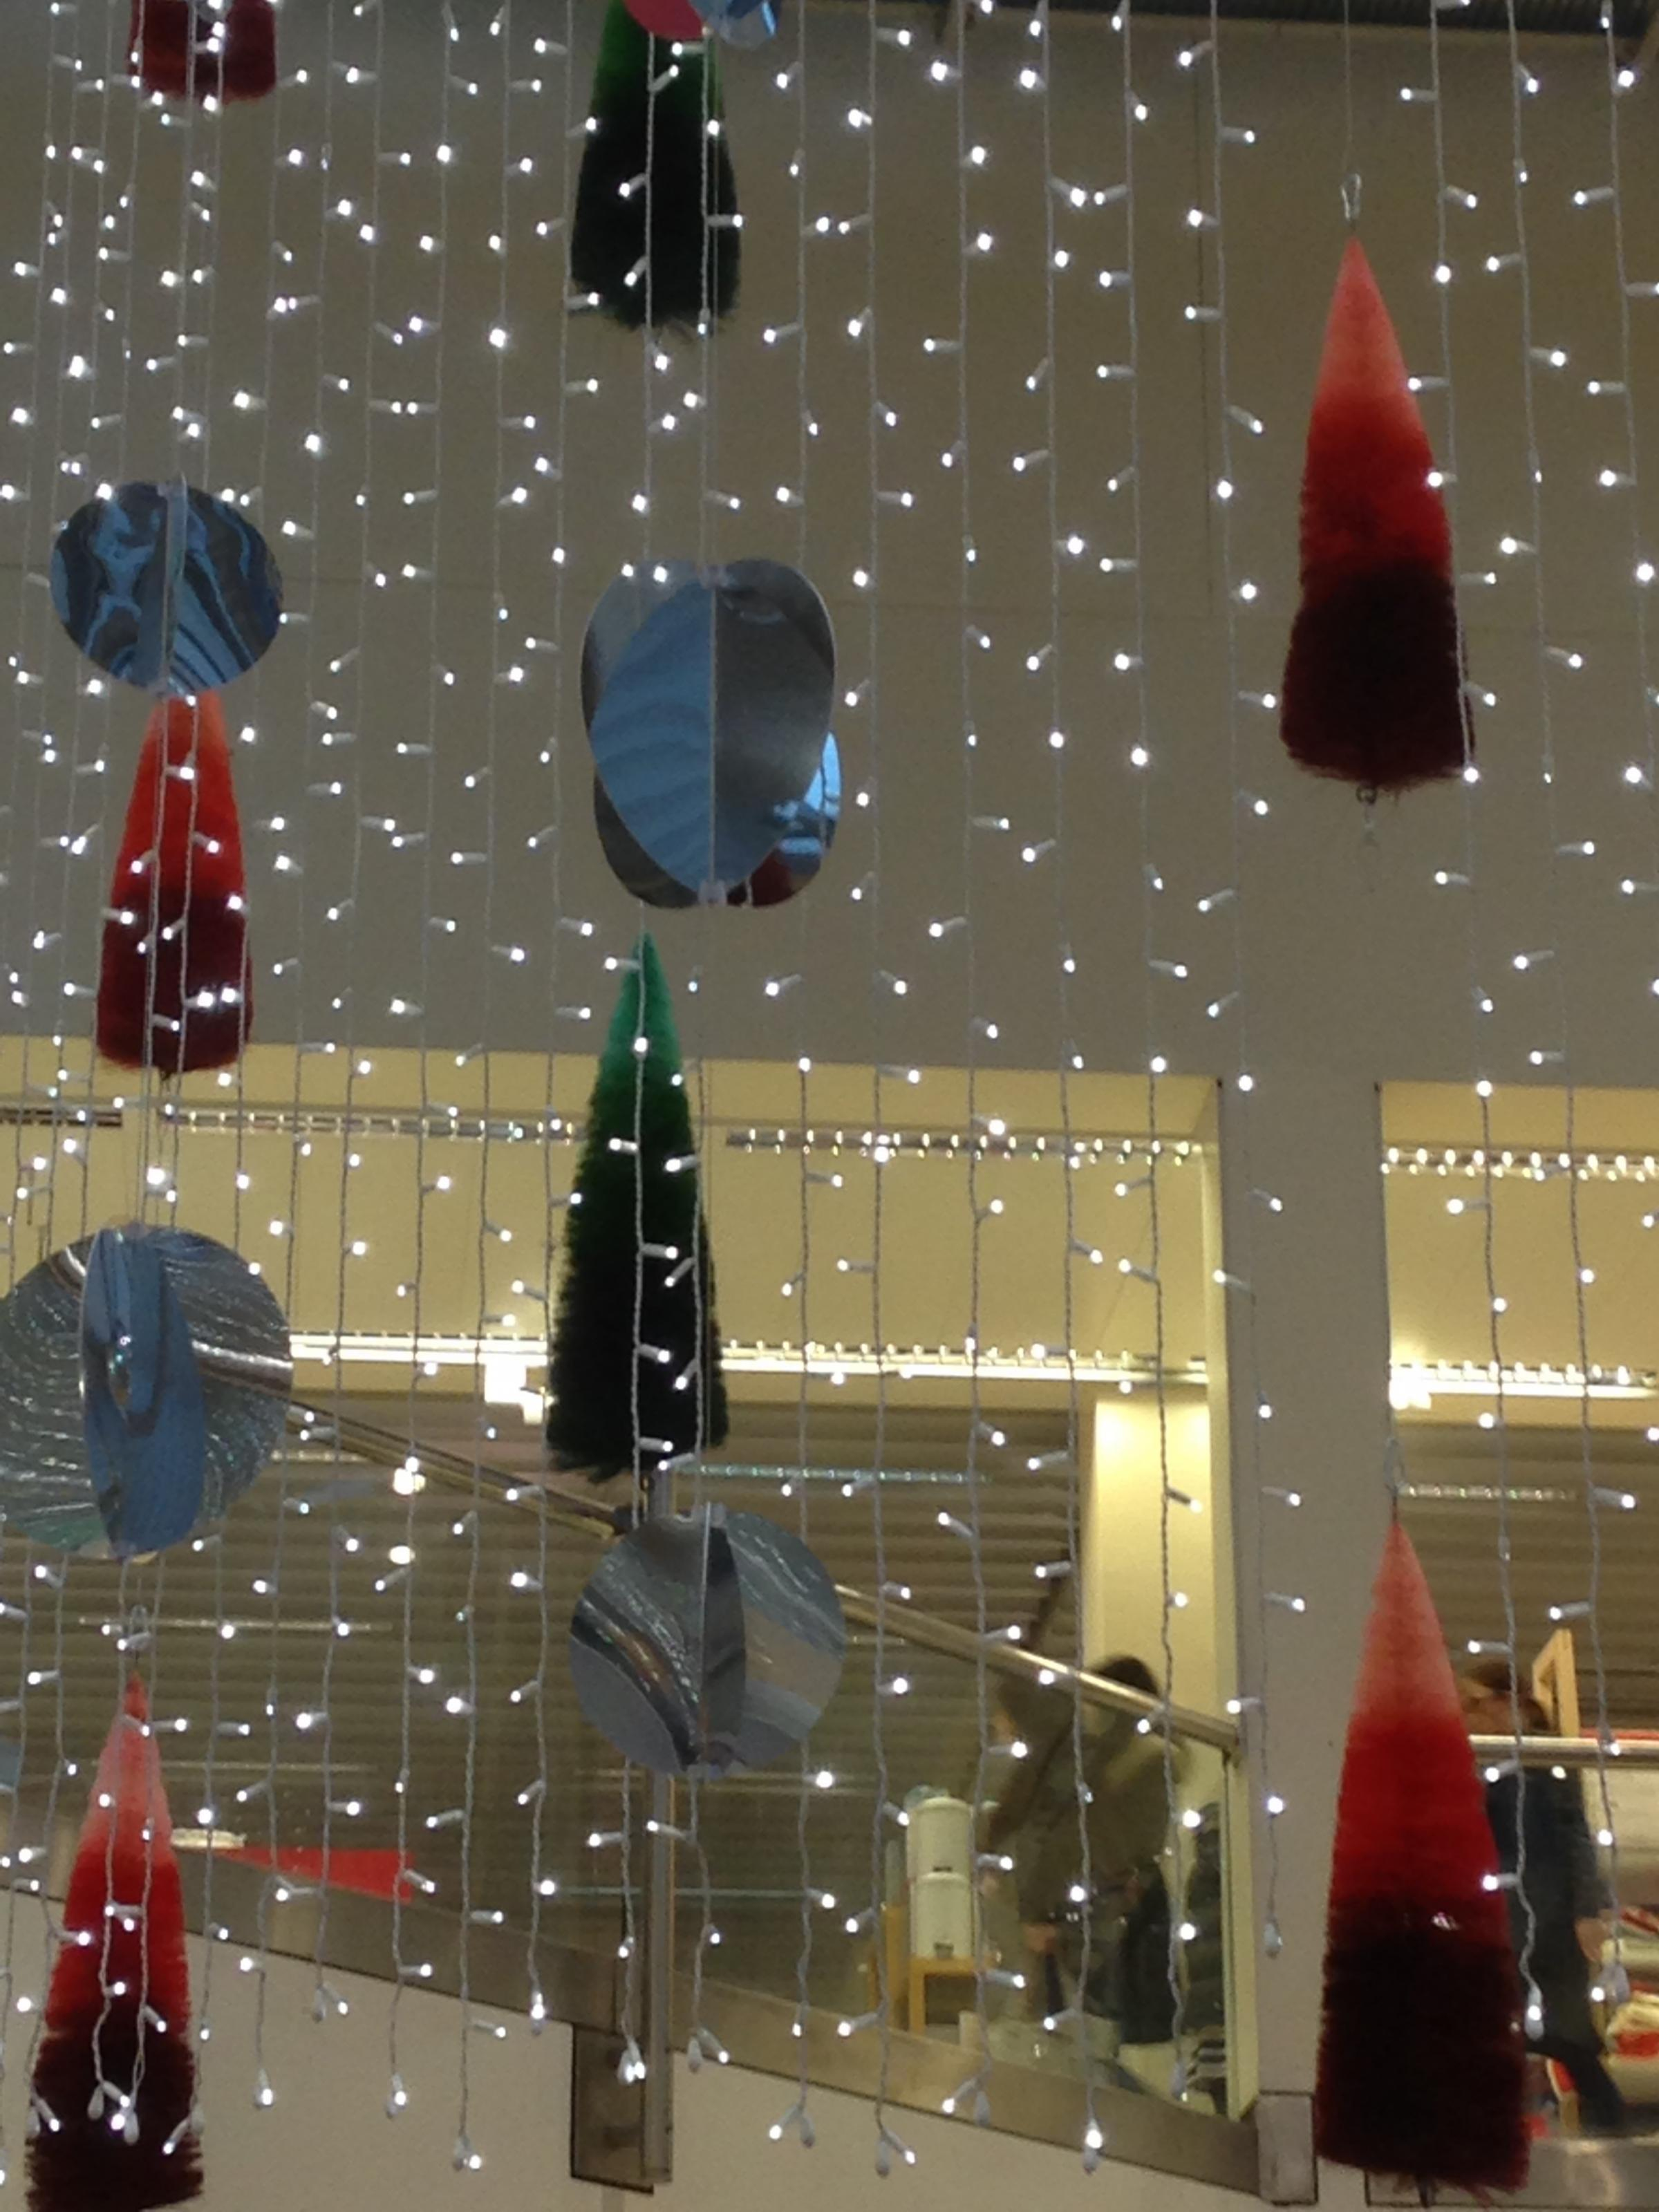 Community Groups And Schools Can Claim Decorations For Christmas 2016